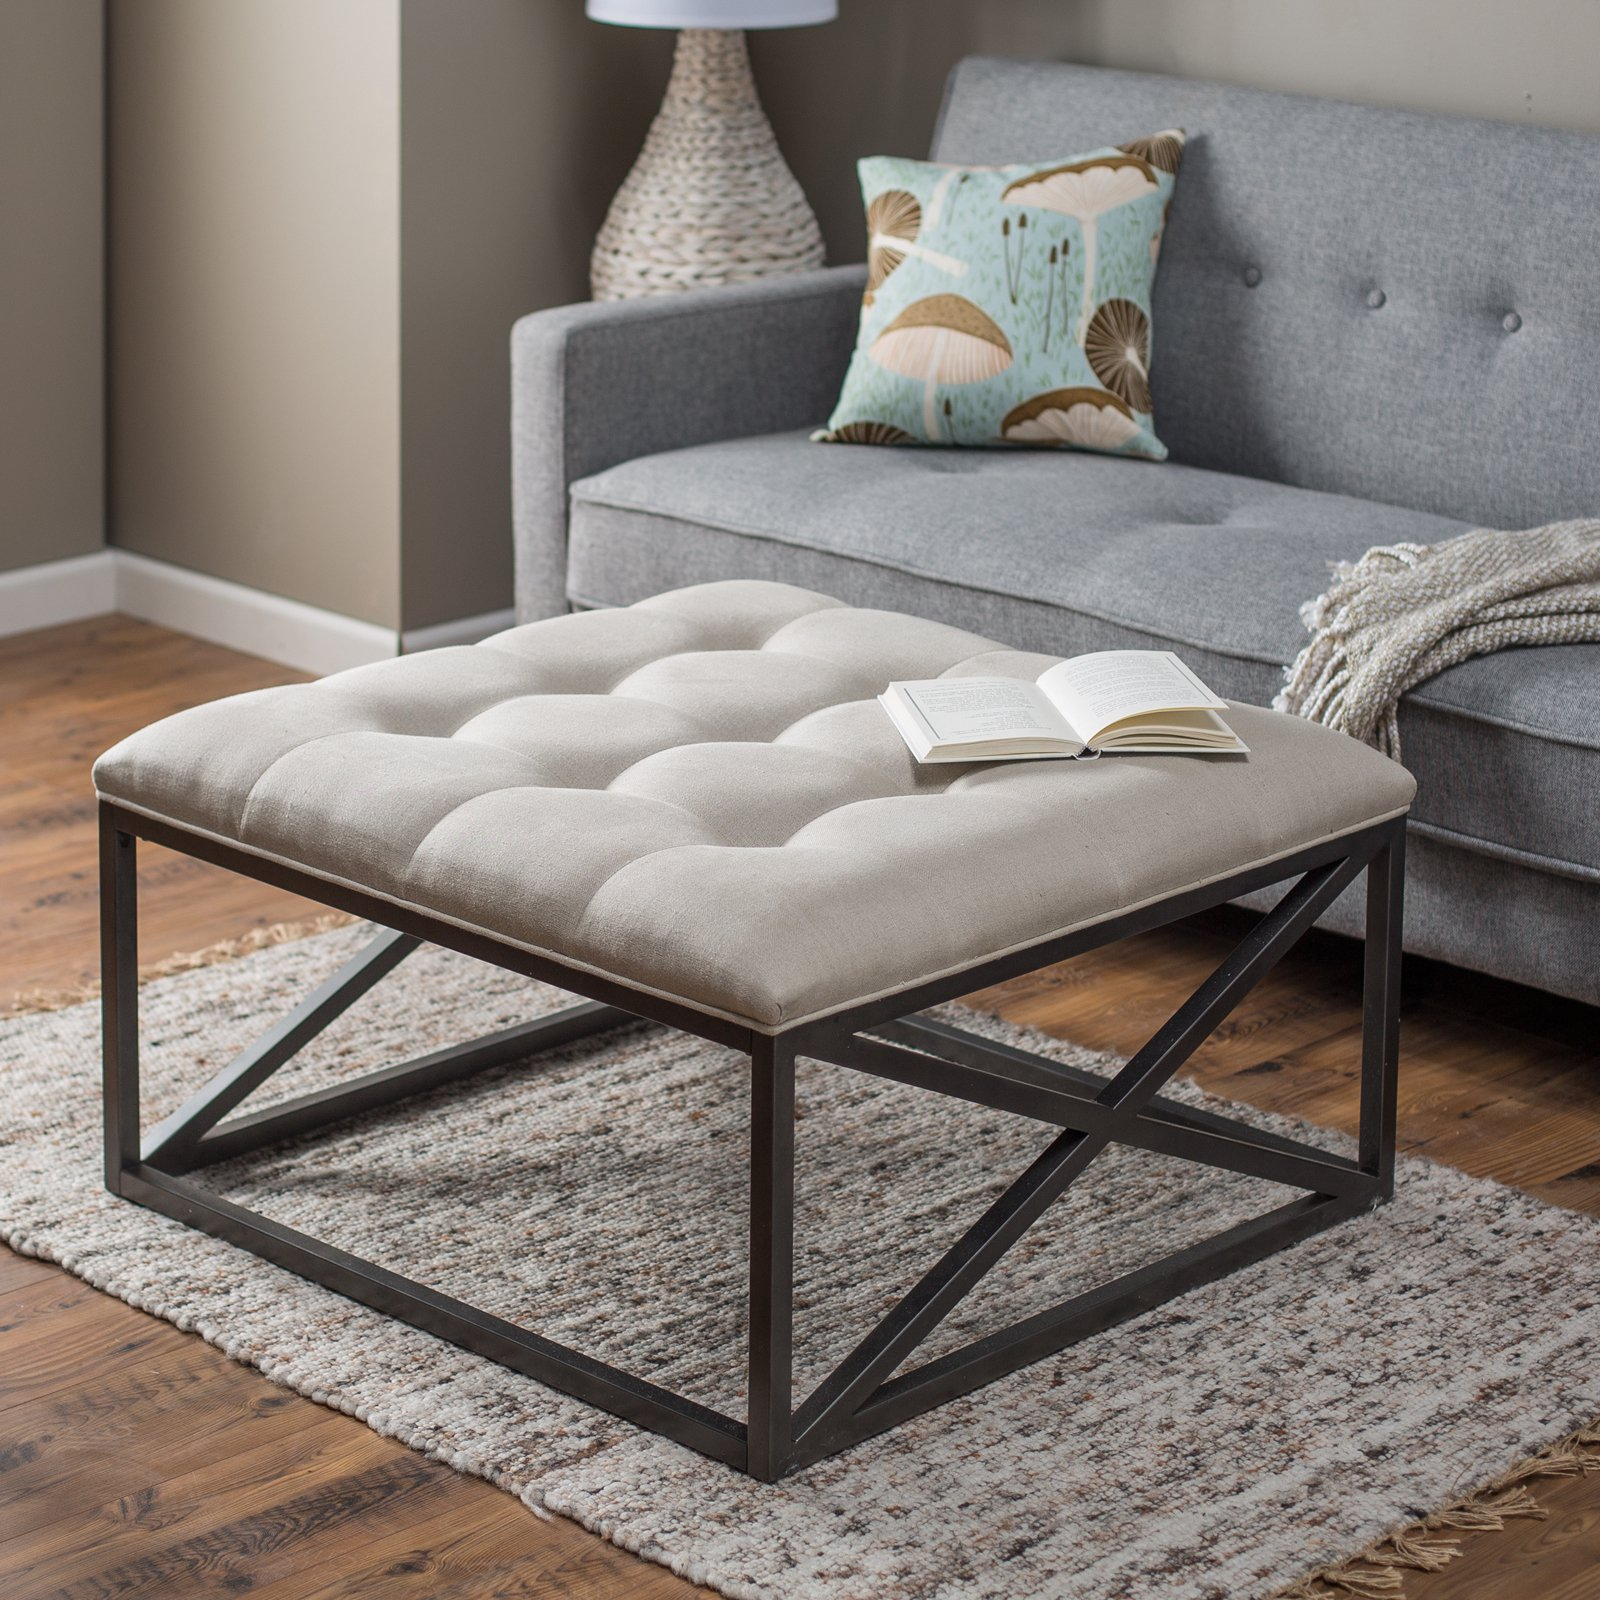 Ottoman Coffee Table With Sliding Wood Top: 8 Plush Tufted Ottomans To Add Comfort And Functionality